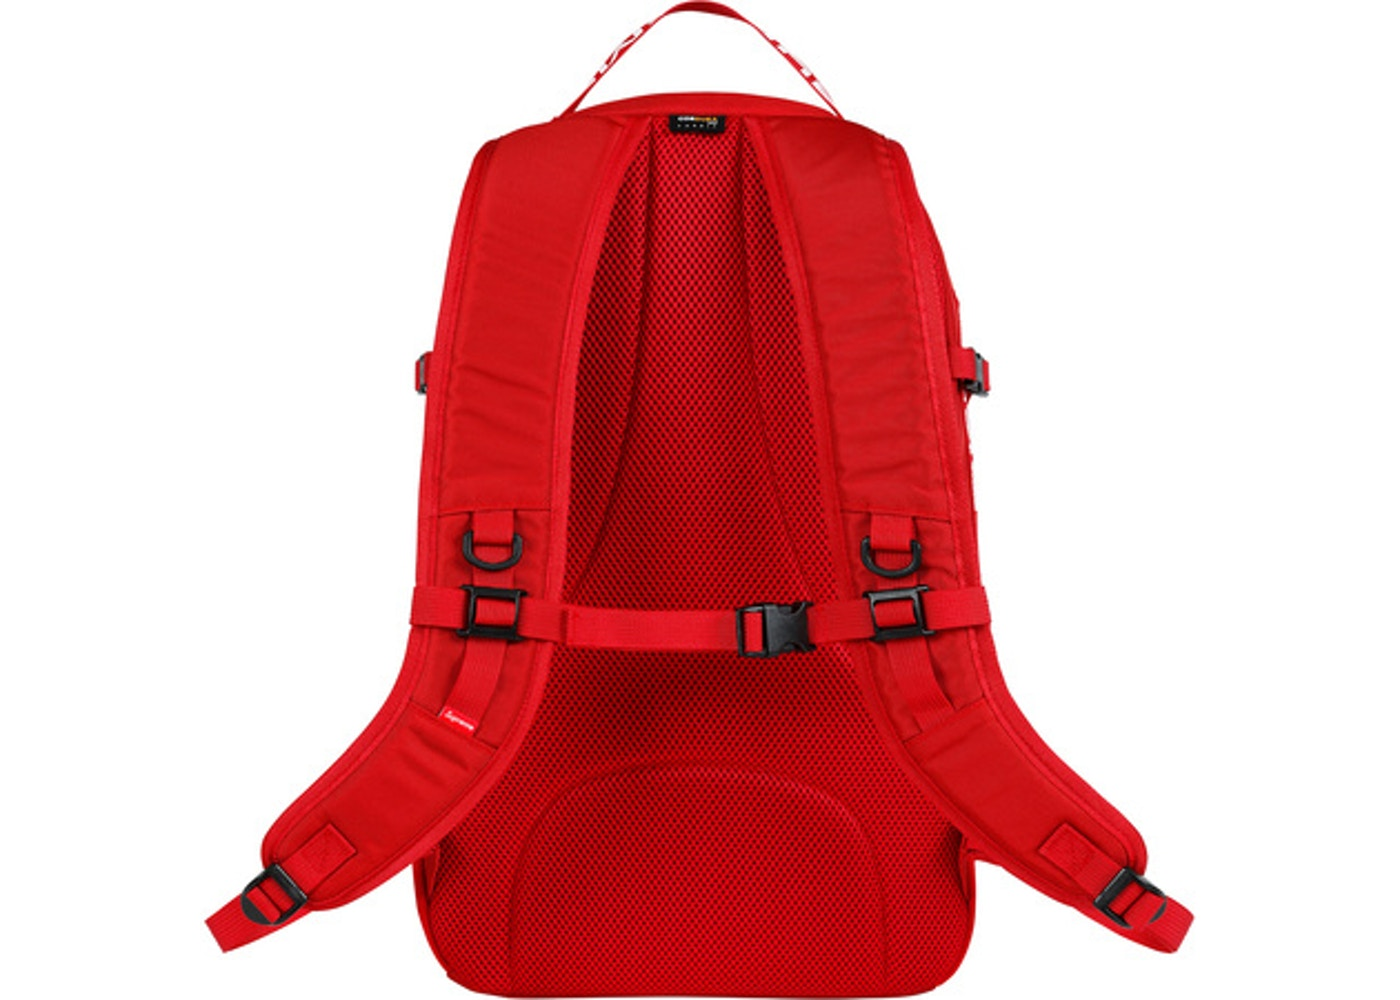 Bookbag clipart red. Supreme backpack ss